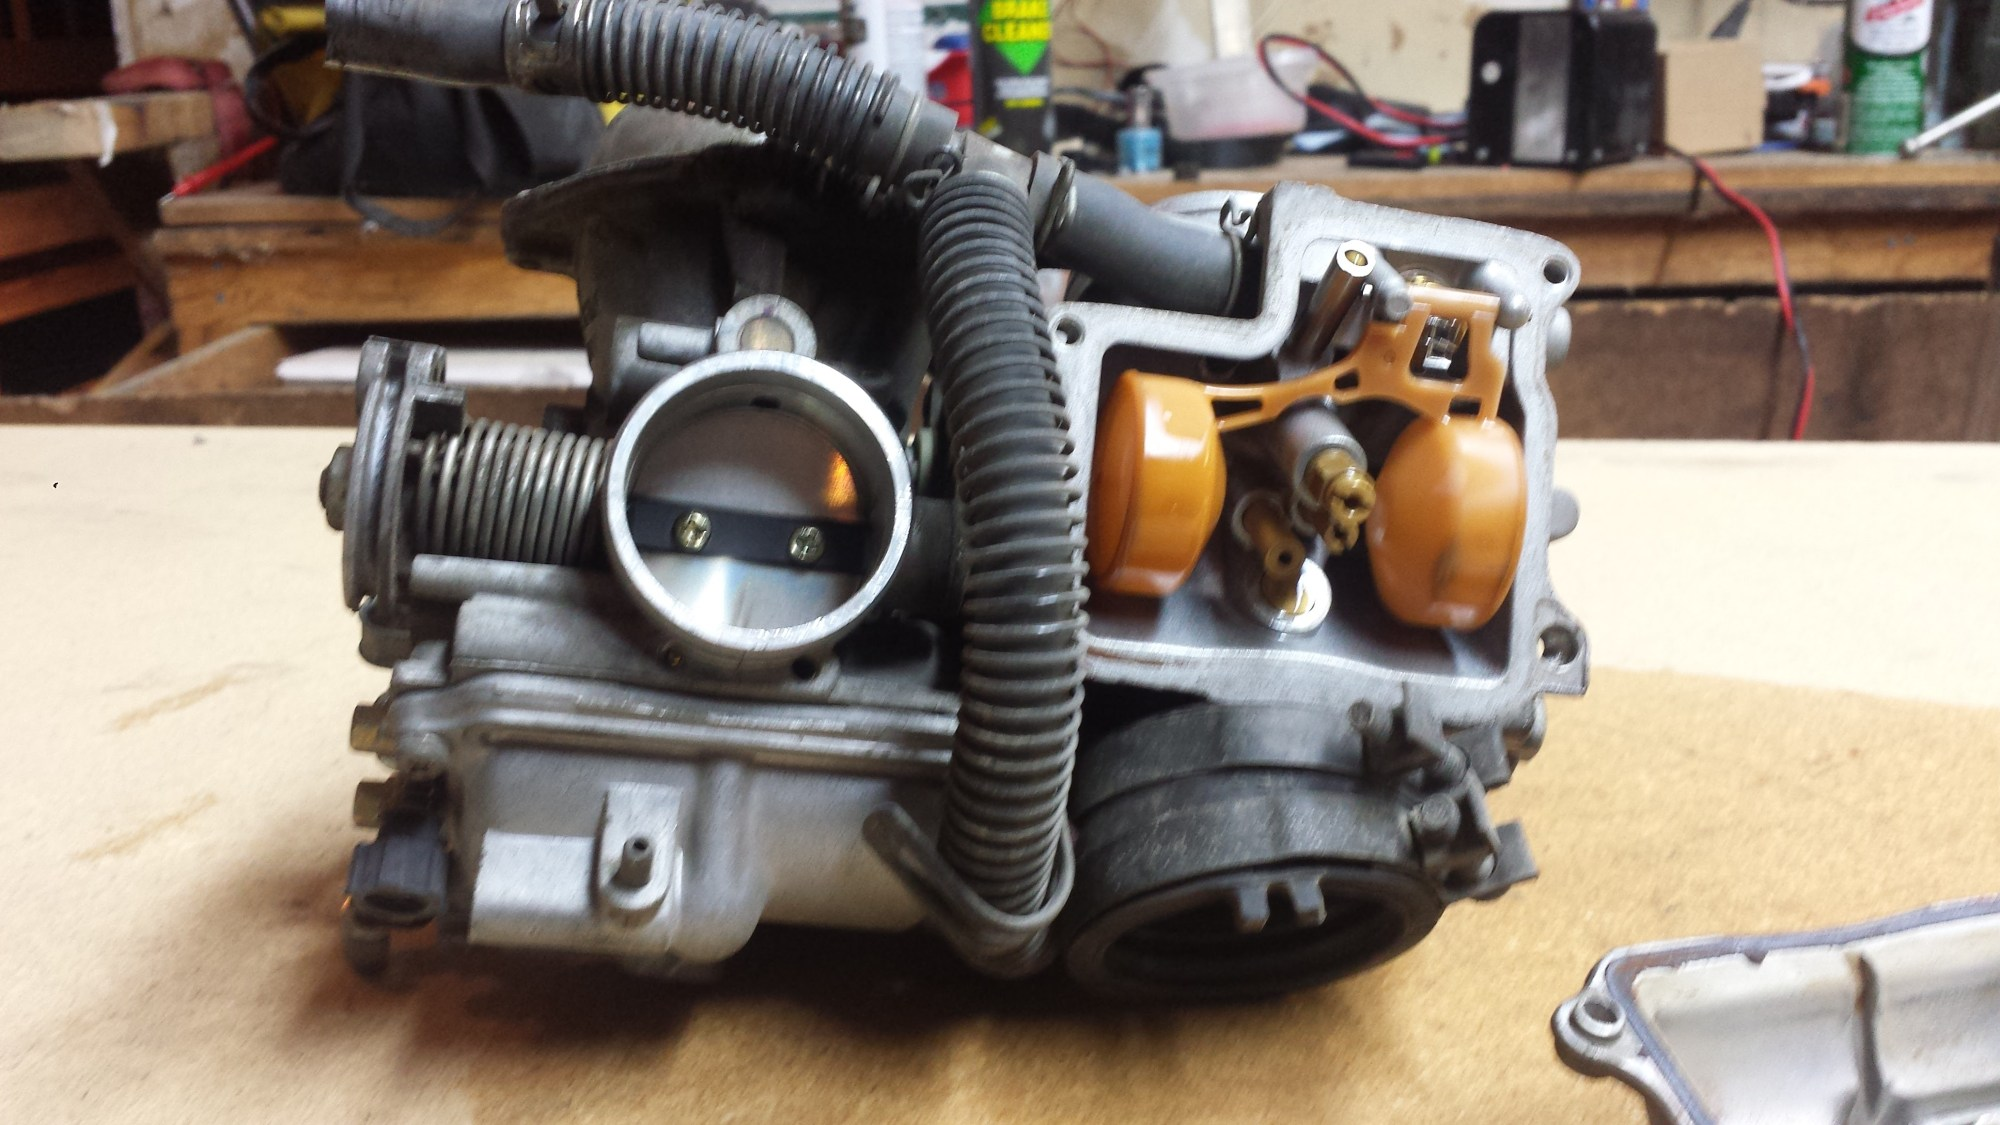 hight resolution of honda shadow v twin carb clean blog for gearheads like you honda motorcycle carb diagrams further honda shadow 600 carburetor